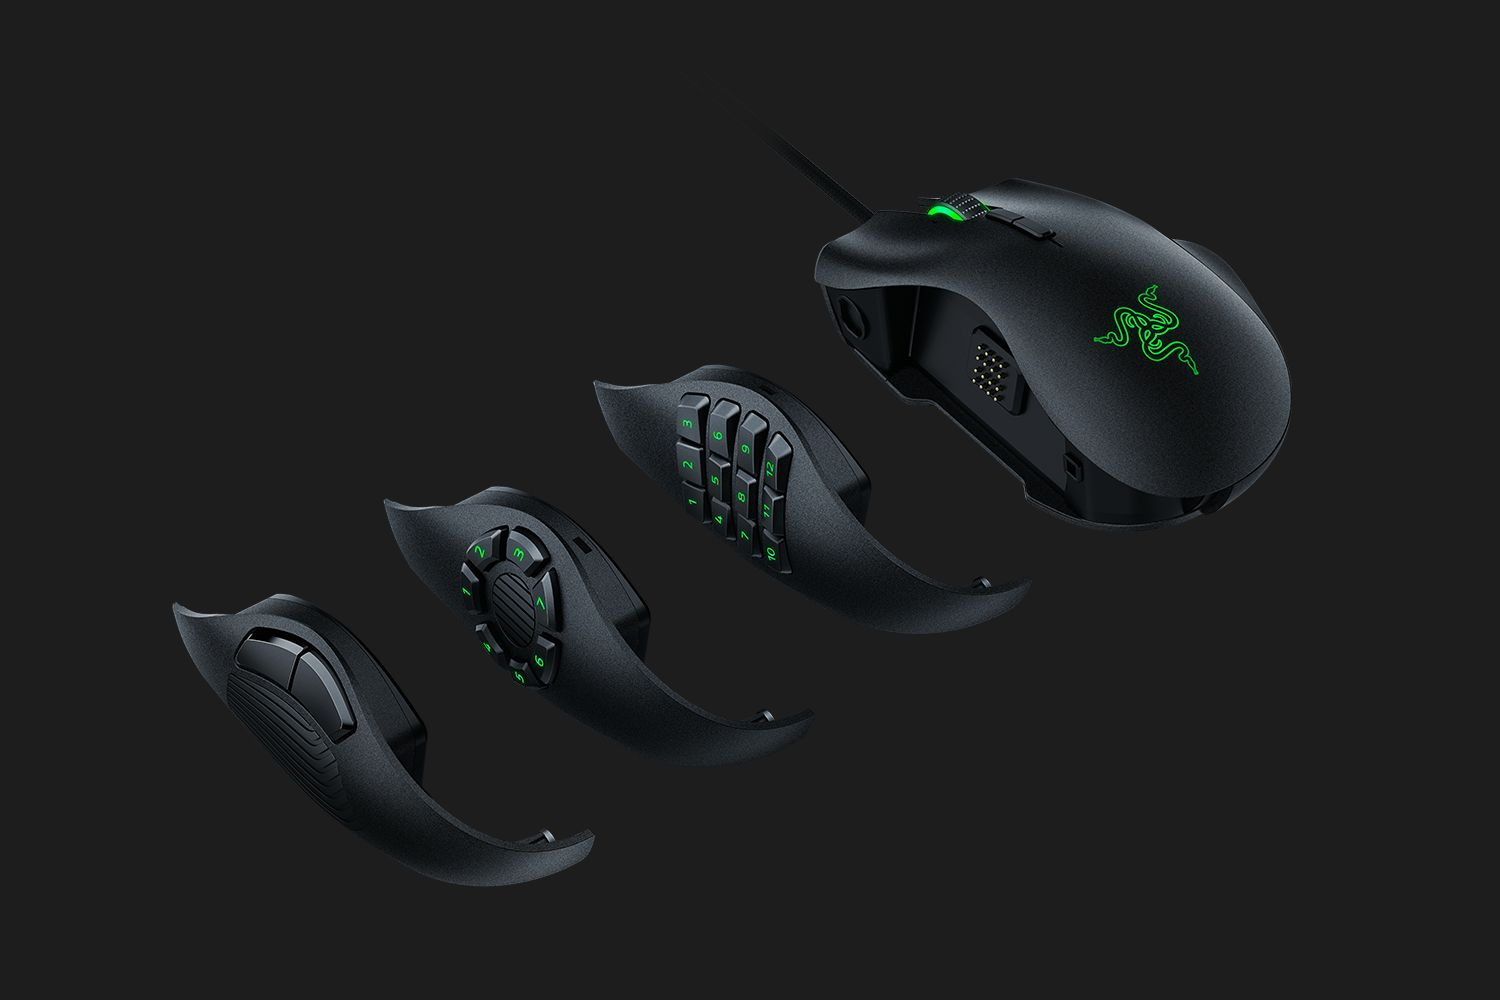 The Hardware Review - Razer Naga Trinity Gaming Mouse